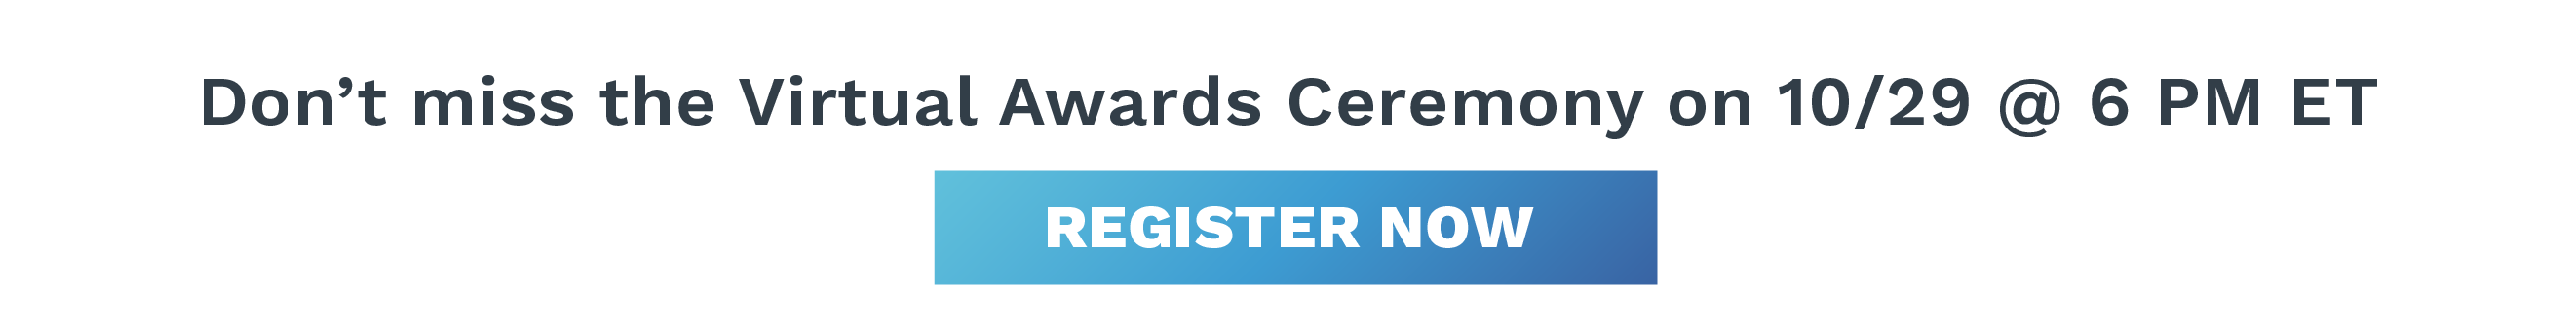 Register for the Virtual Awards Ceremony on 10/29